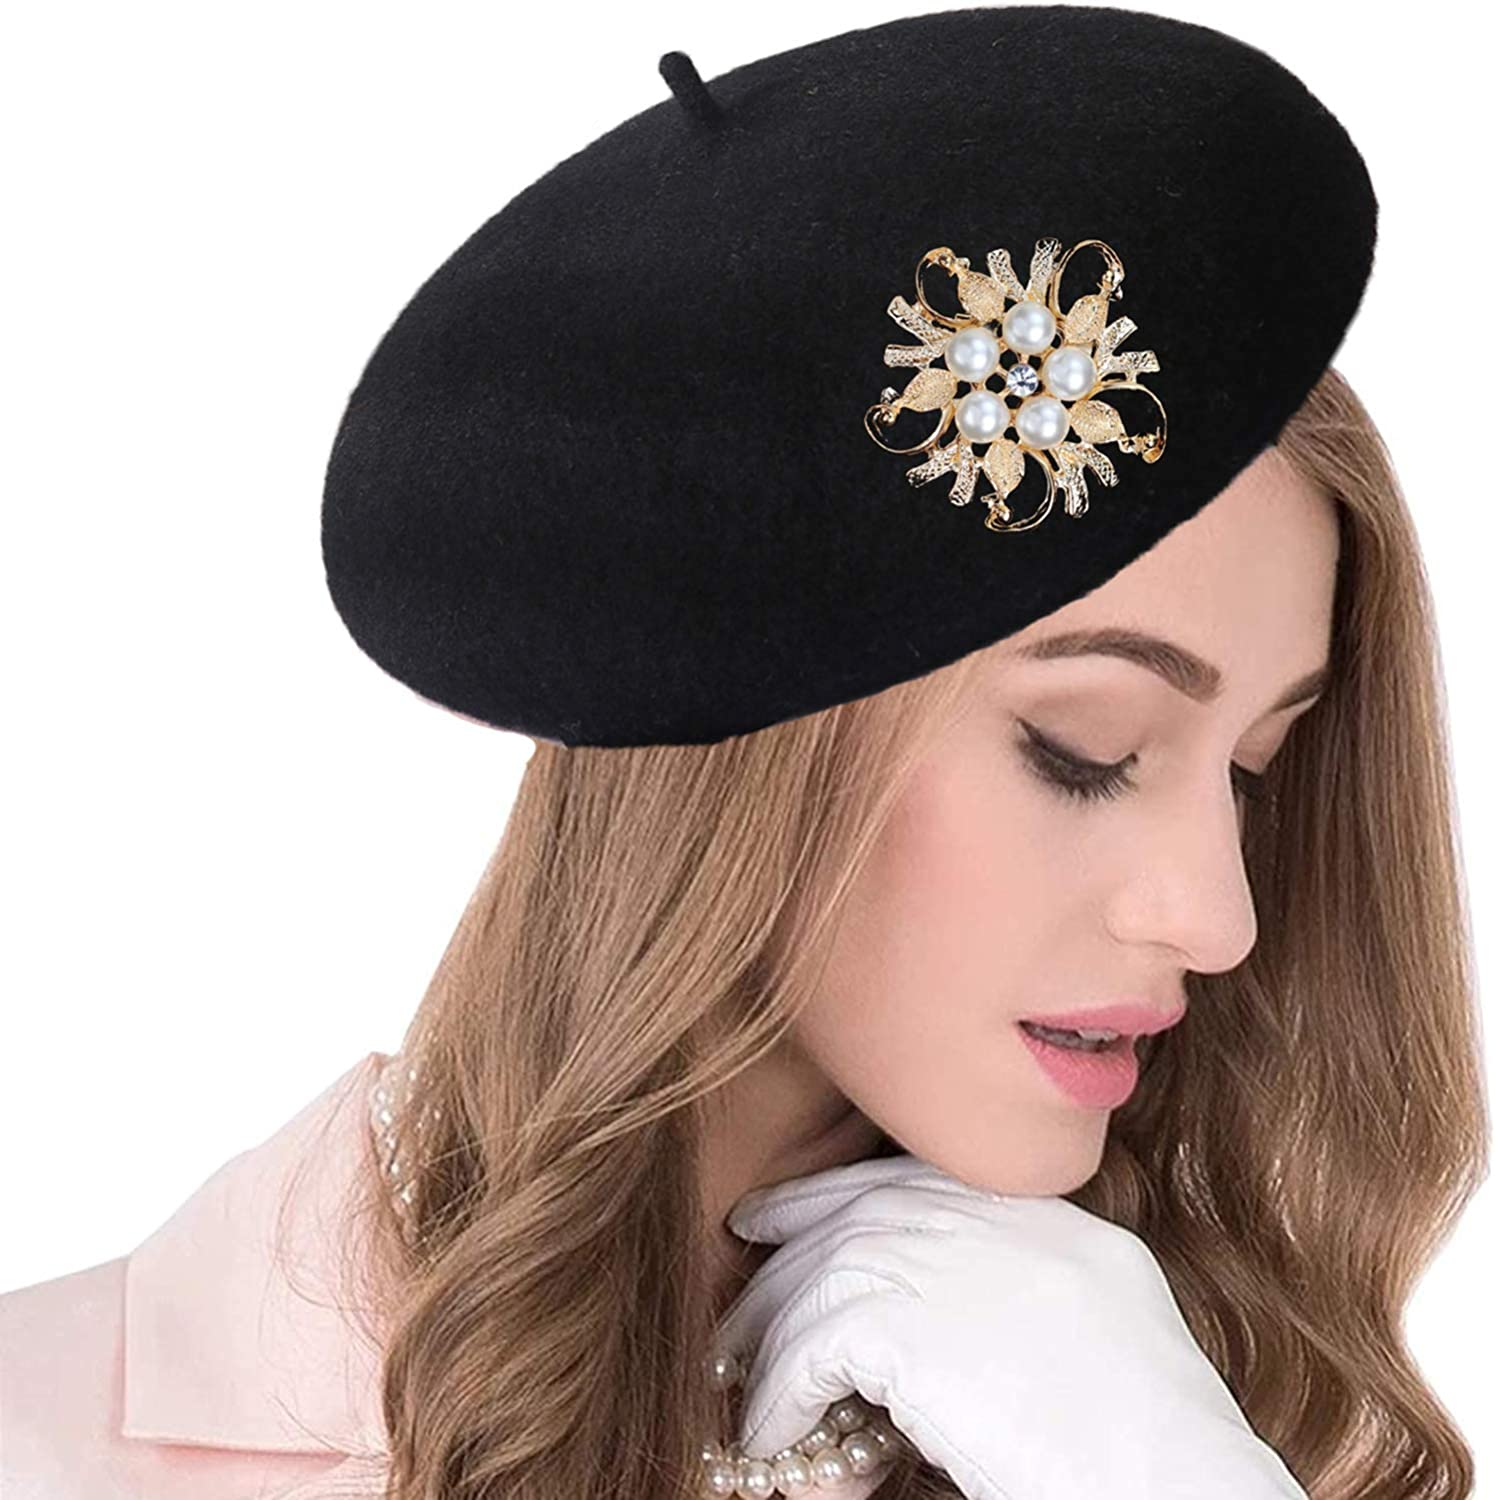 seven wolves Leopard Max 74% OFF Max 58% OFF Beret Casual Class French Lightweight